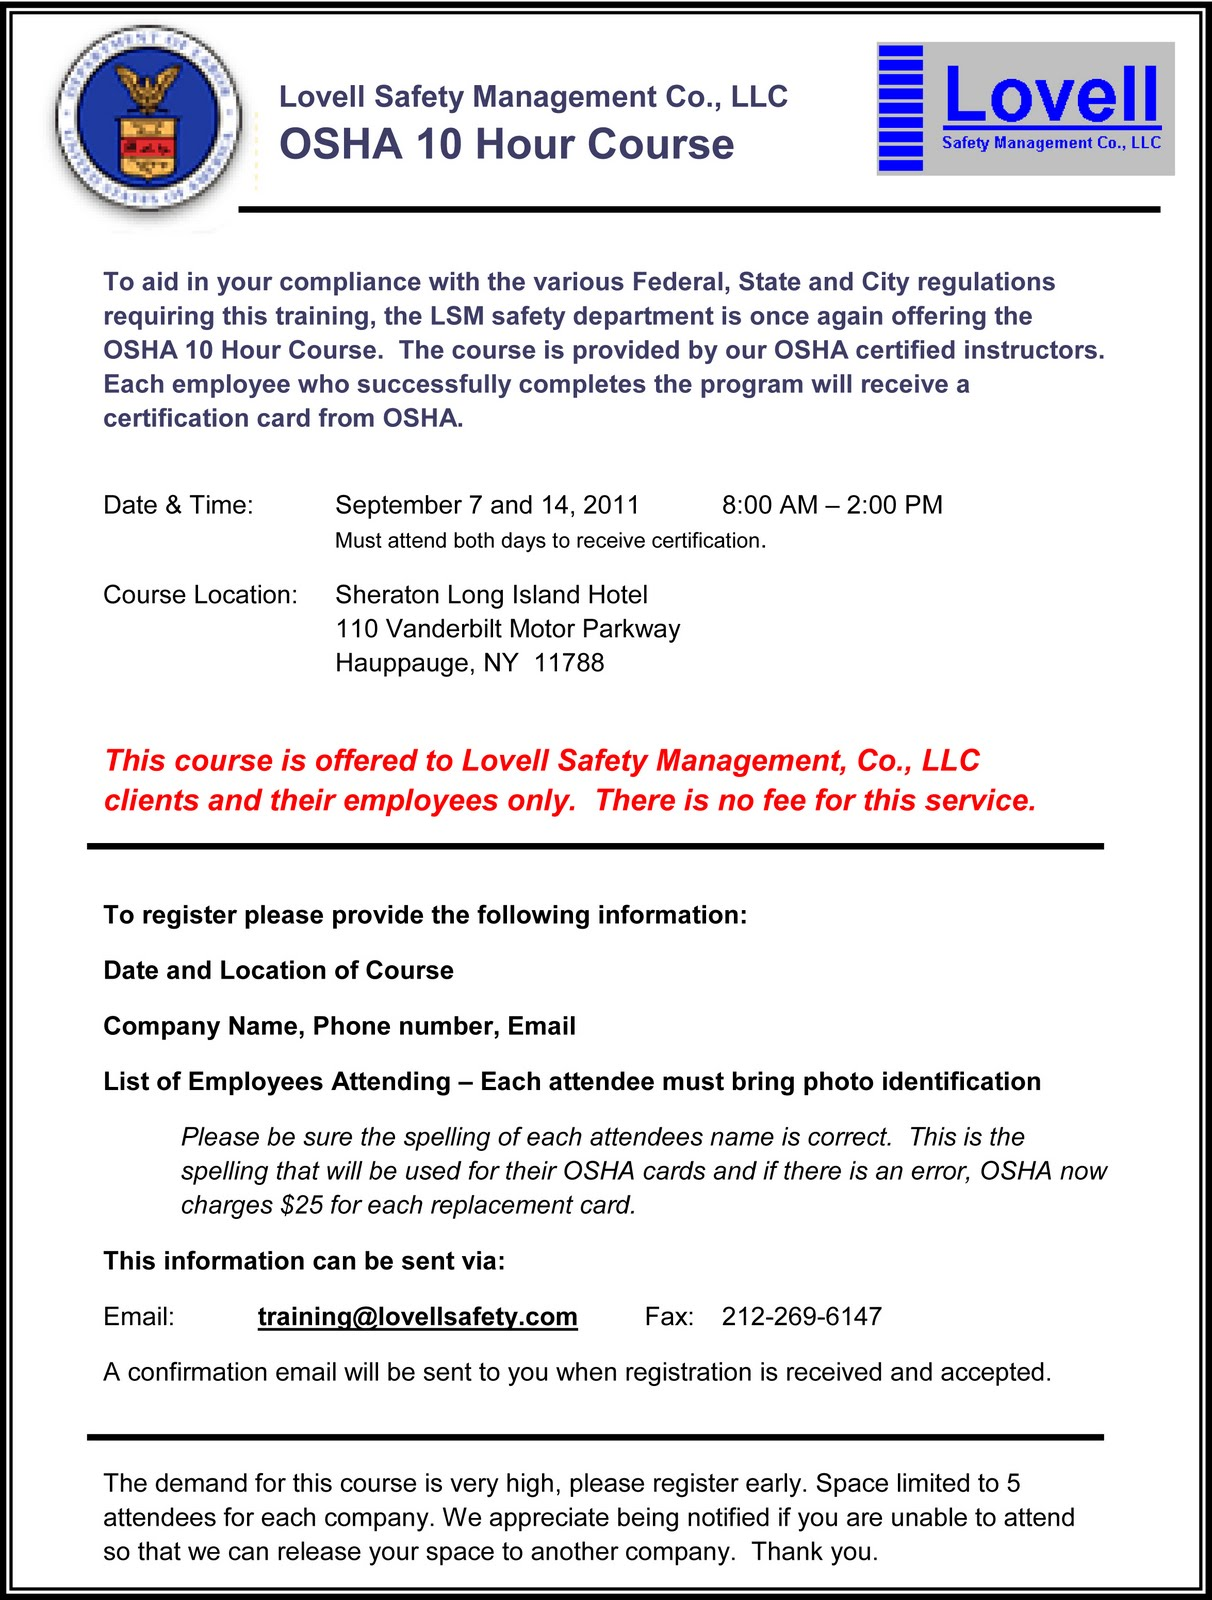 Safety Pays Lovell Is Offering Our Clients Osha 10 Hour Class In